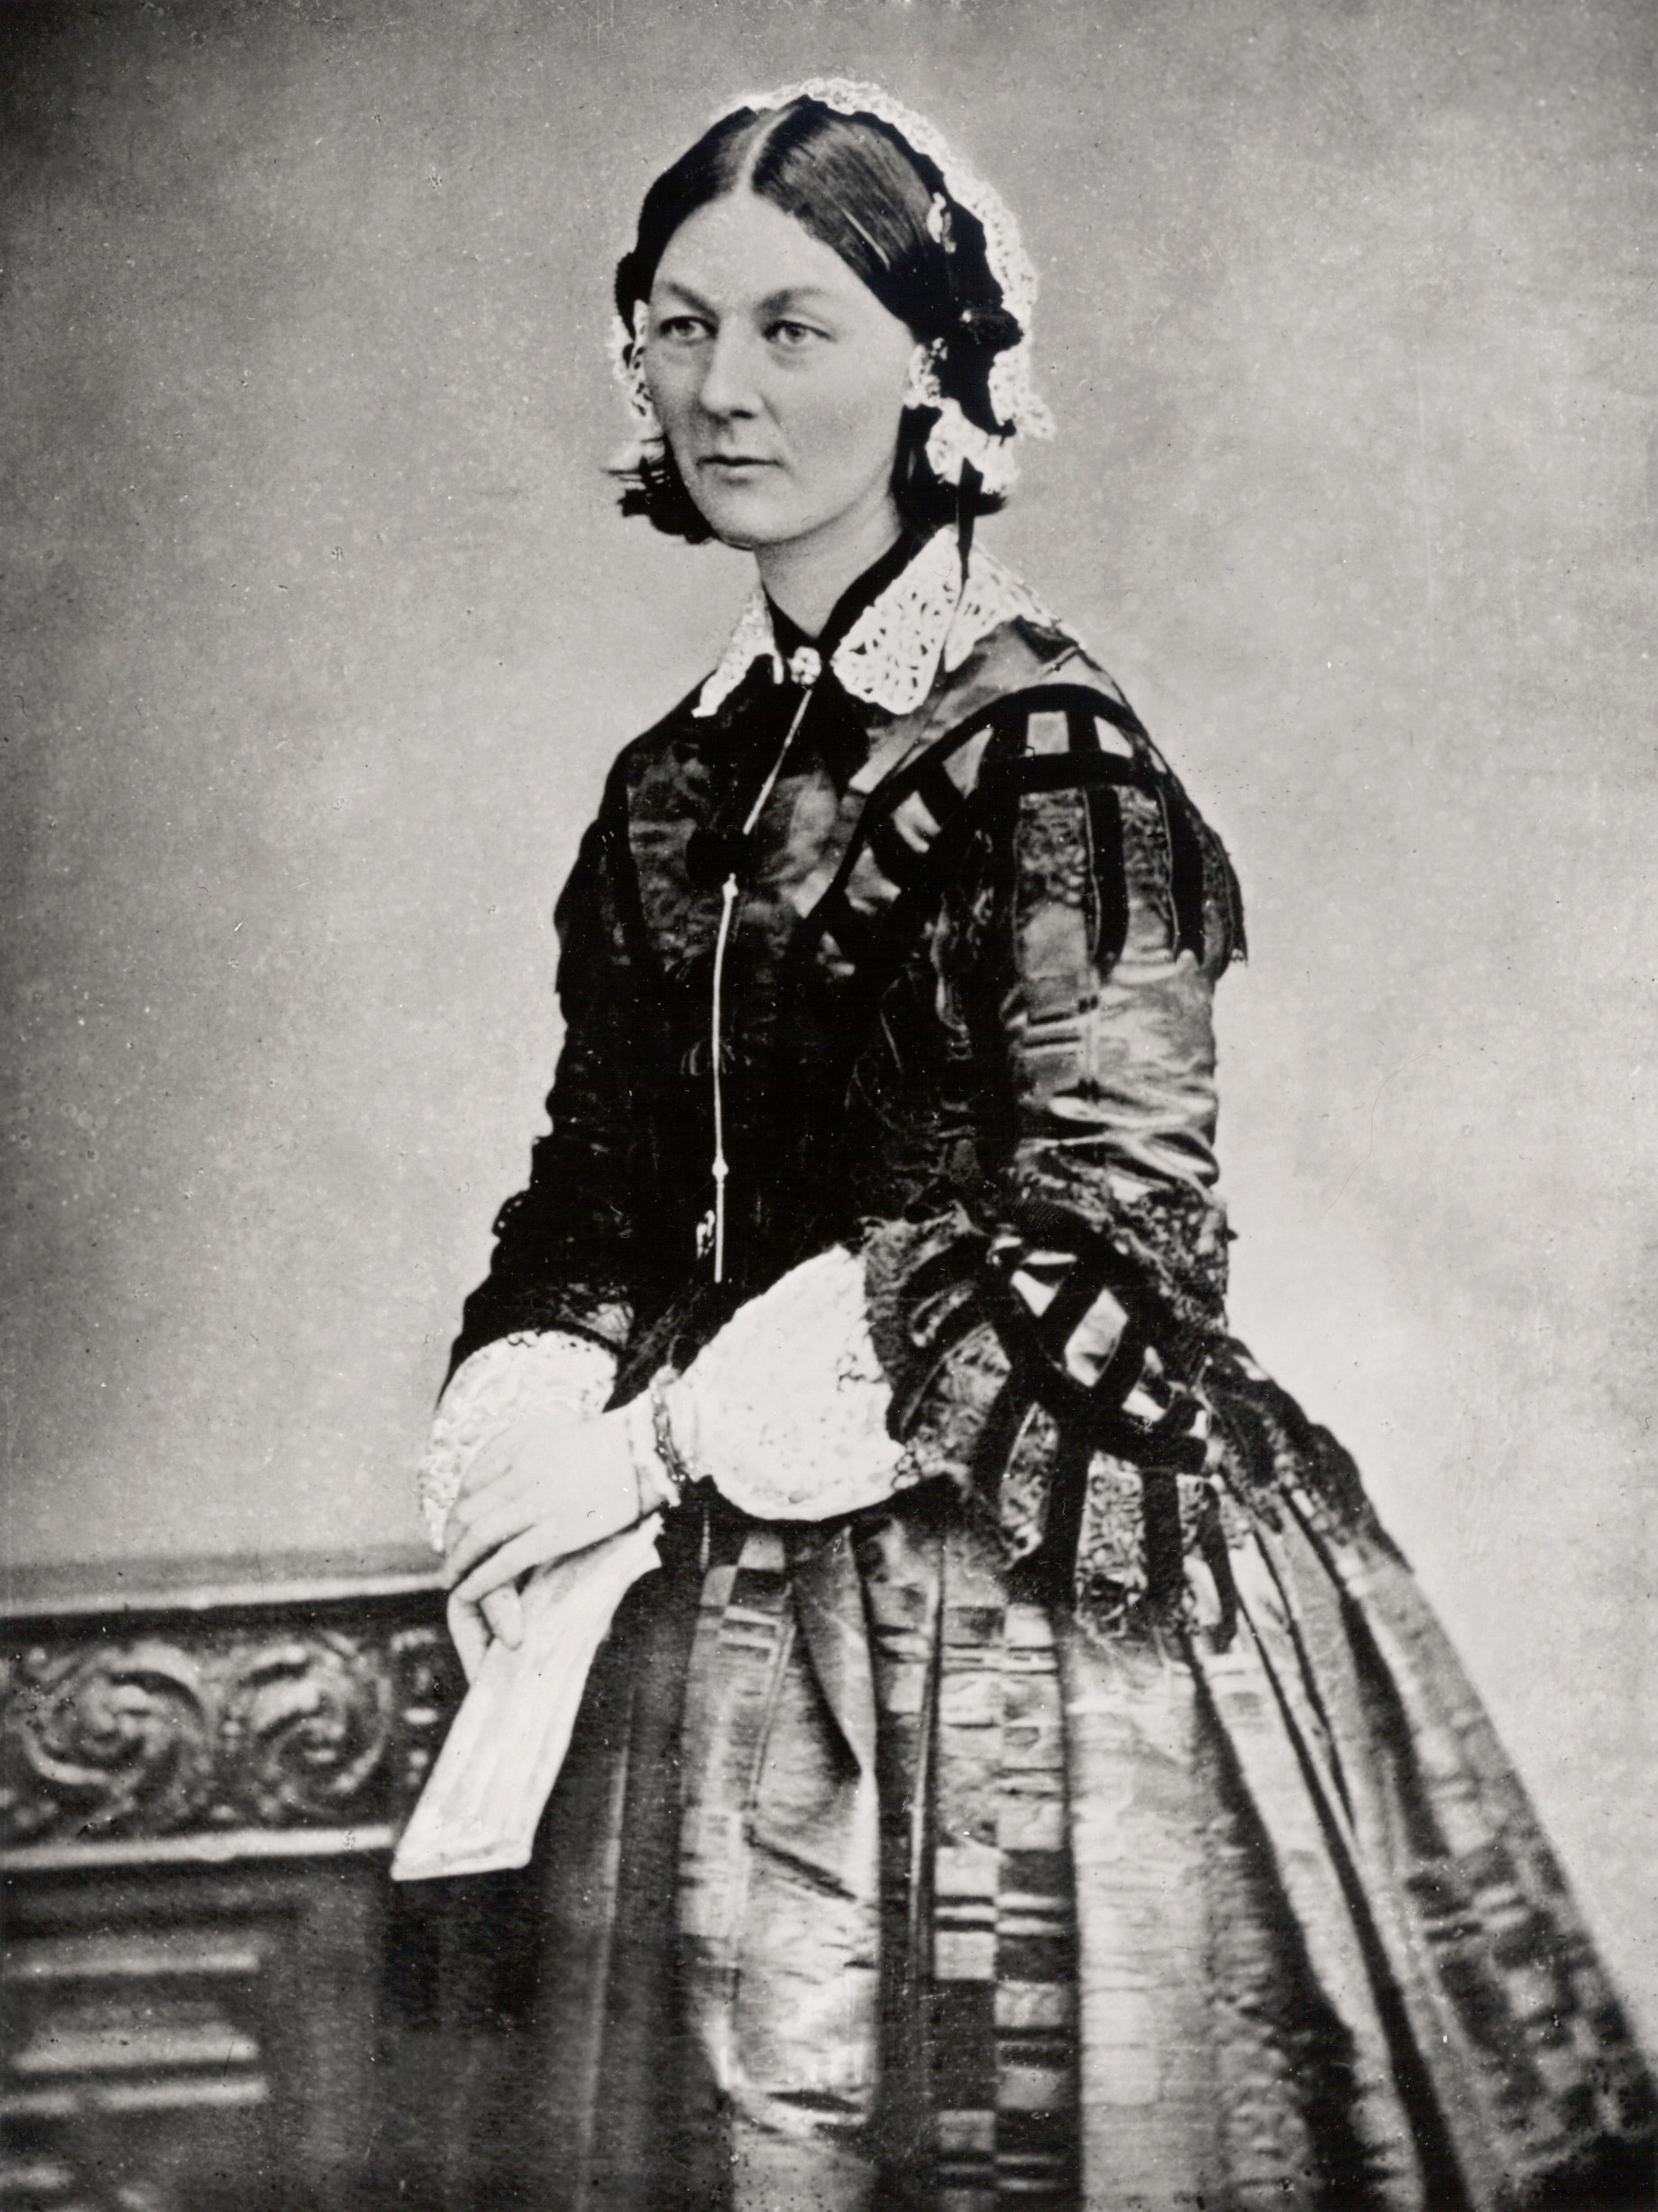 Portrait of Florence Nightingale wearing a lace hat